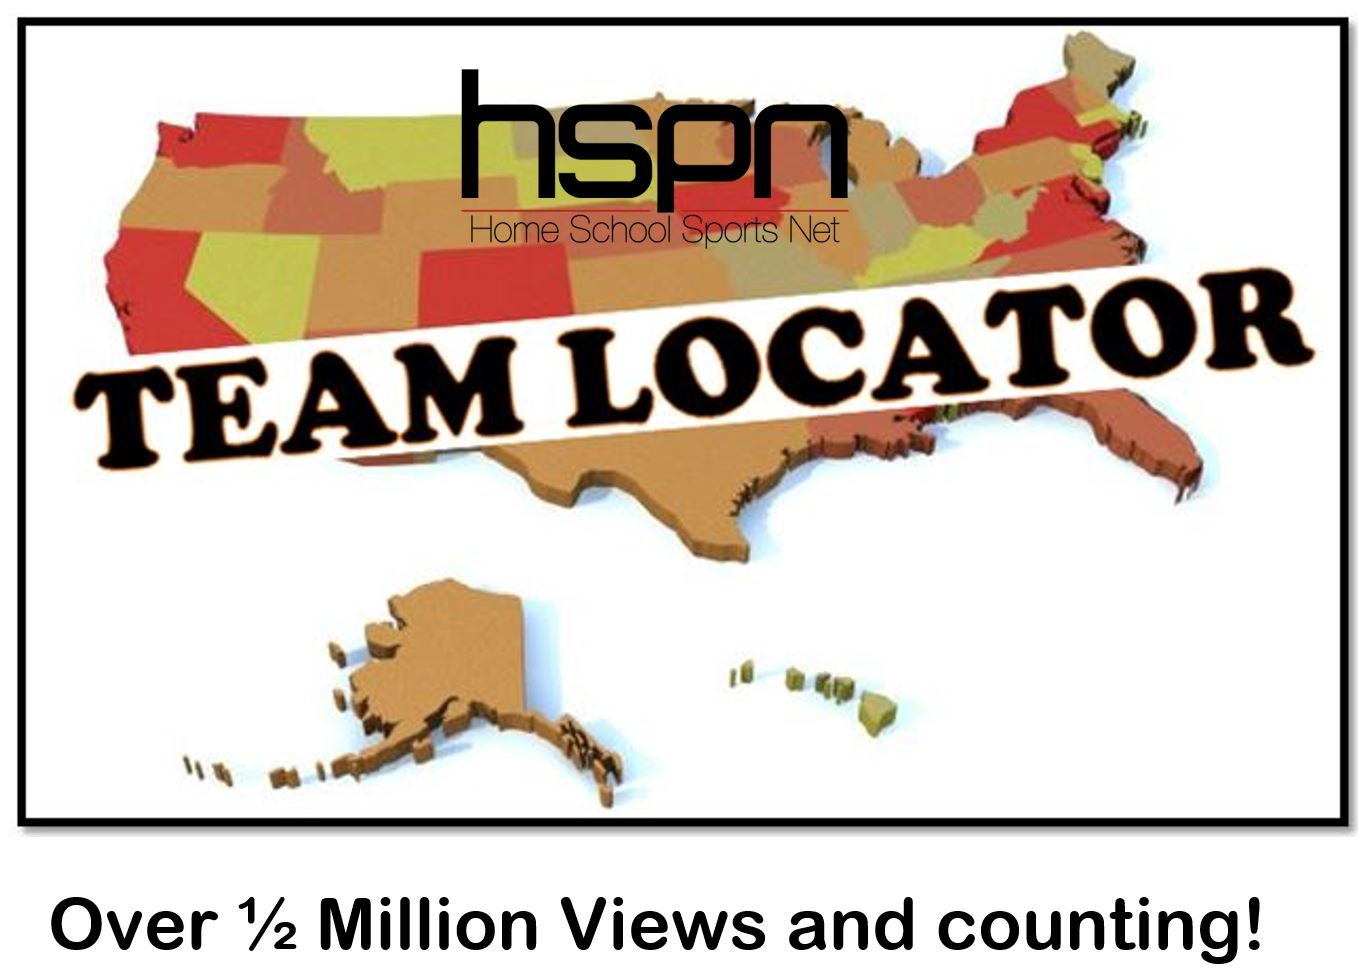 Find a homeschool sports team in any state in the USA or request that you are searching for one in your area.